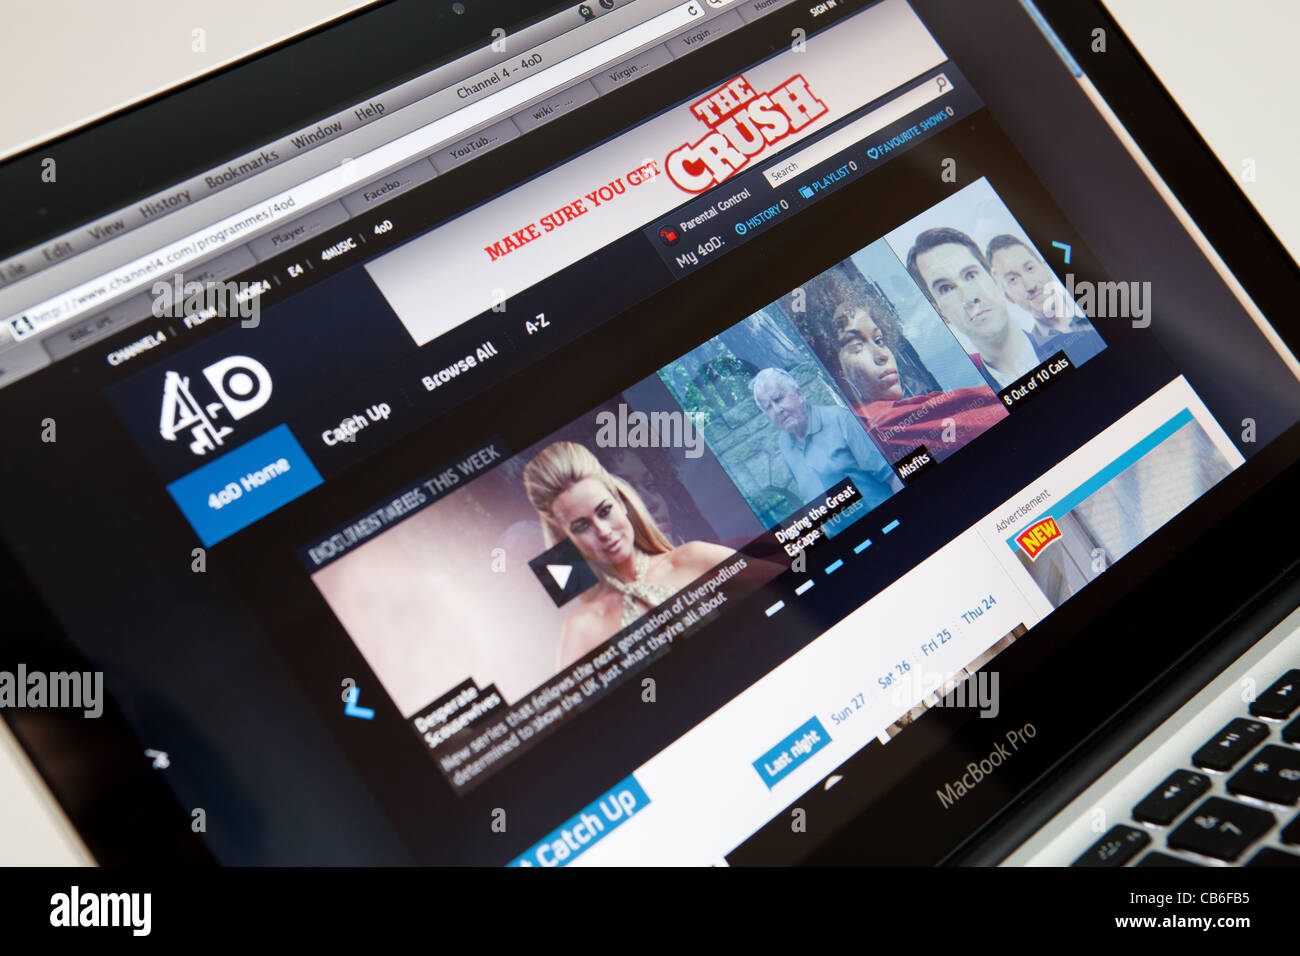 4OD TV Online Website Screen shot of web page - Stock Image